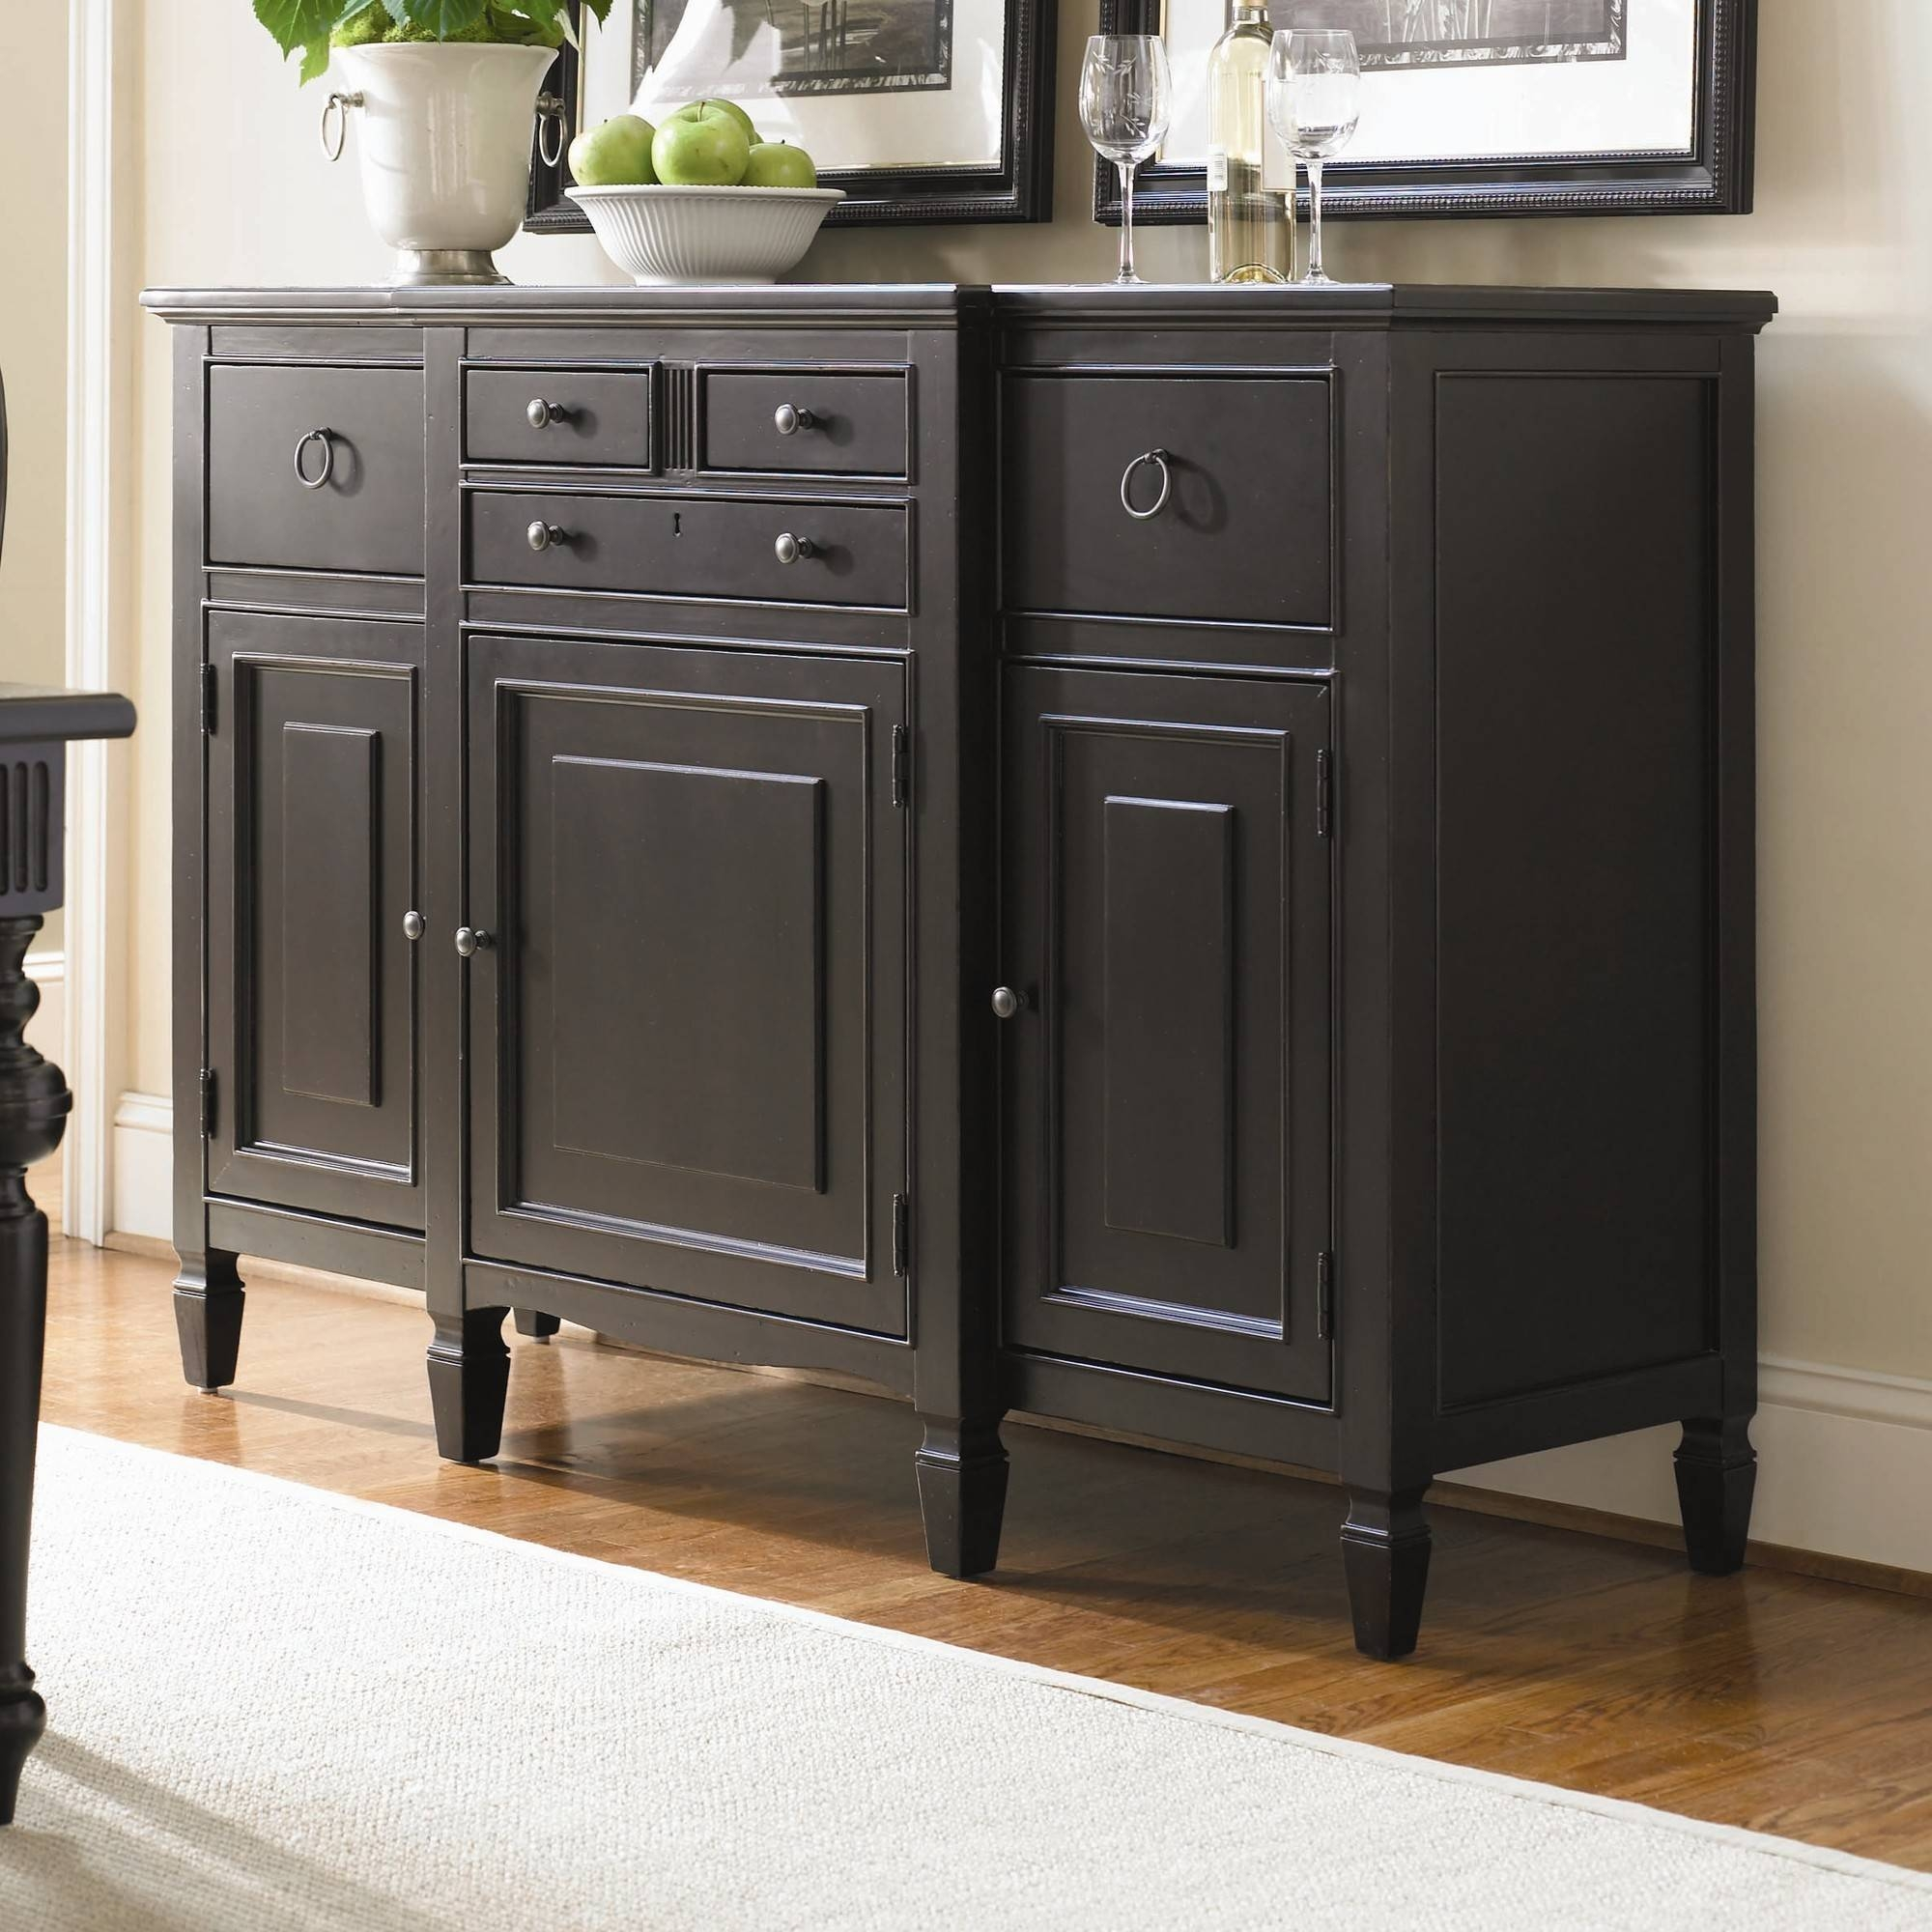 Sideboards. Awesome Buffet Bar Cabinet: Buffet-Bar-Cabinet-Buffet for Thin Sideboard Tables (Image 25 of 30)